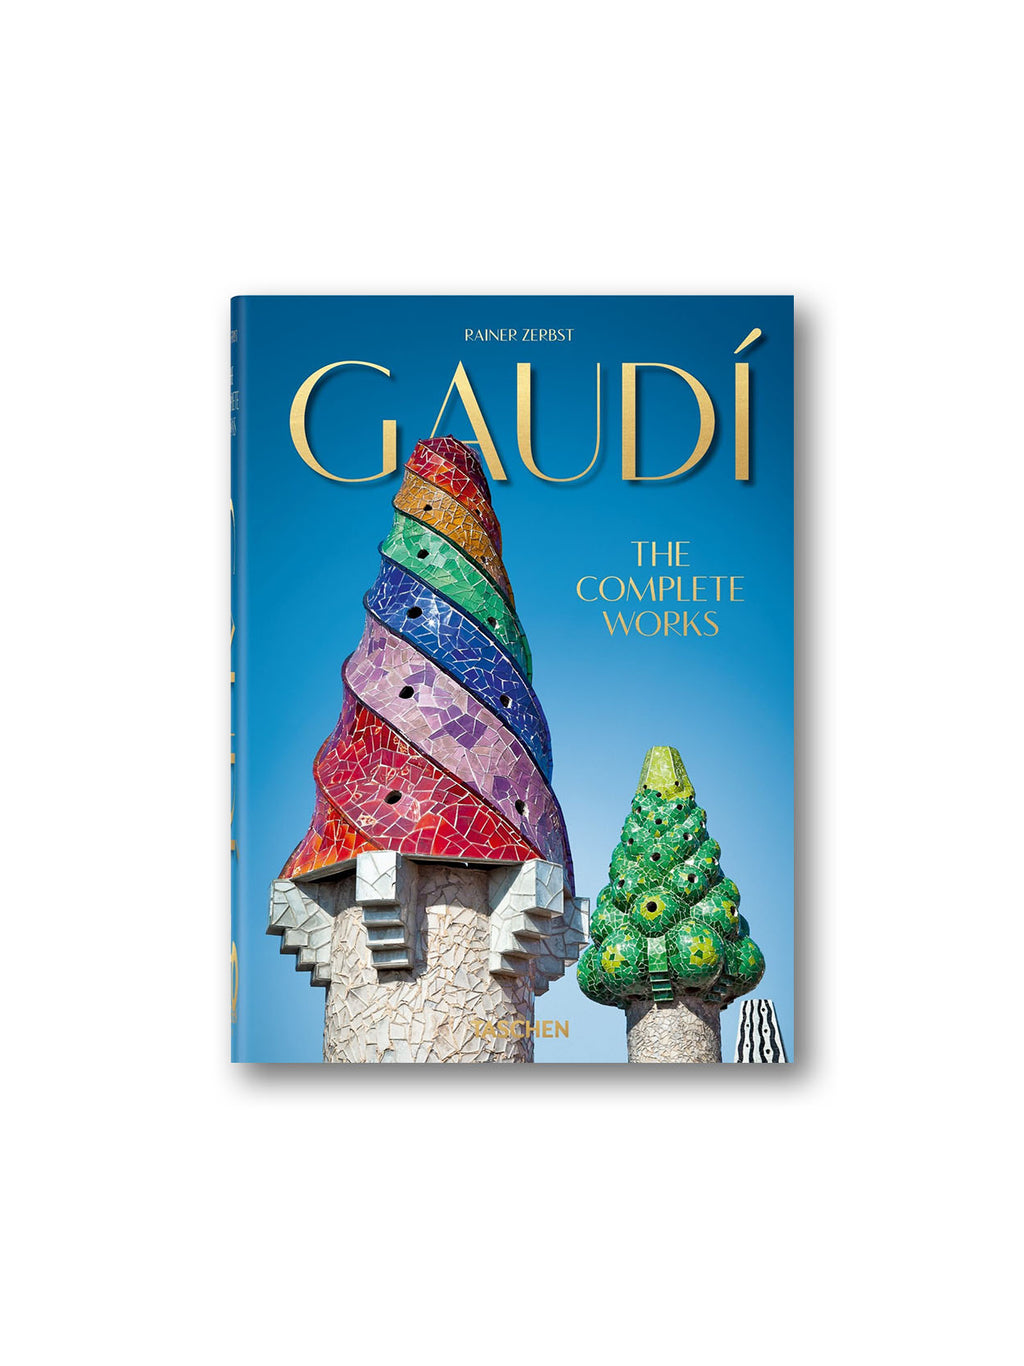 Gaudi - The Complete Works - 40th Anniversary Edition